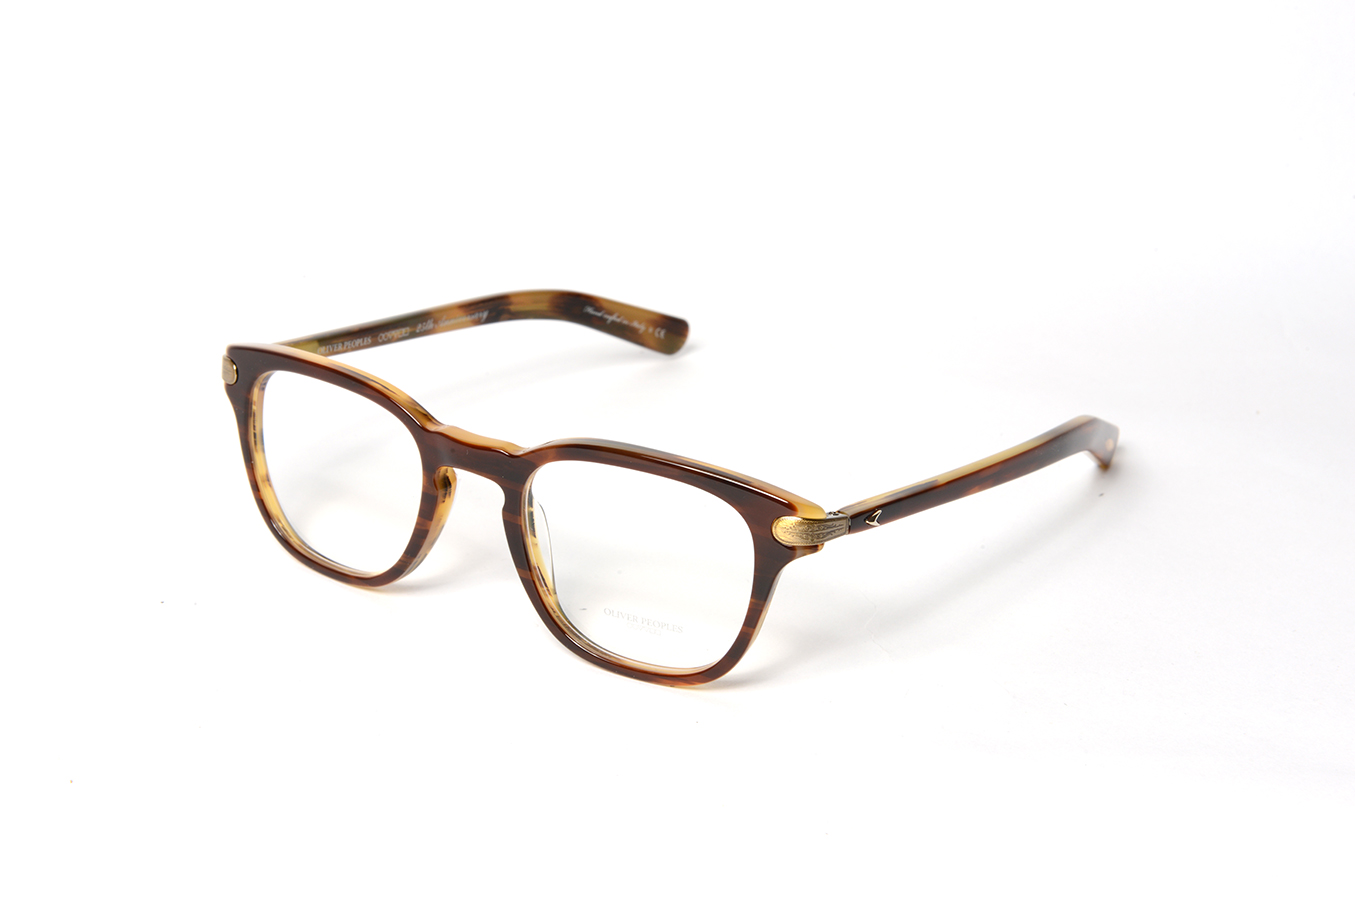 e09836d0b4d73 Oliver Peoples XXV 25th anniversary - Piccadilly Opticians -